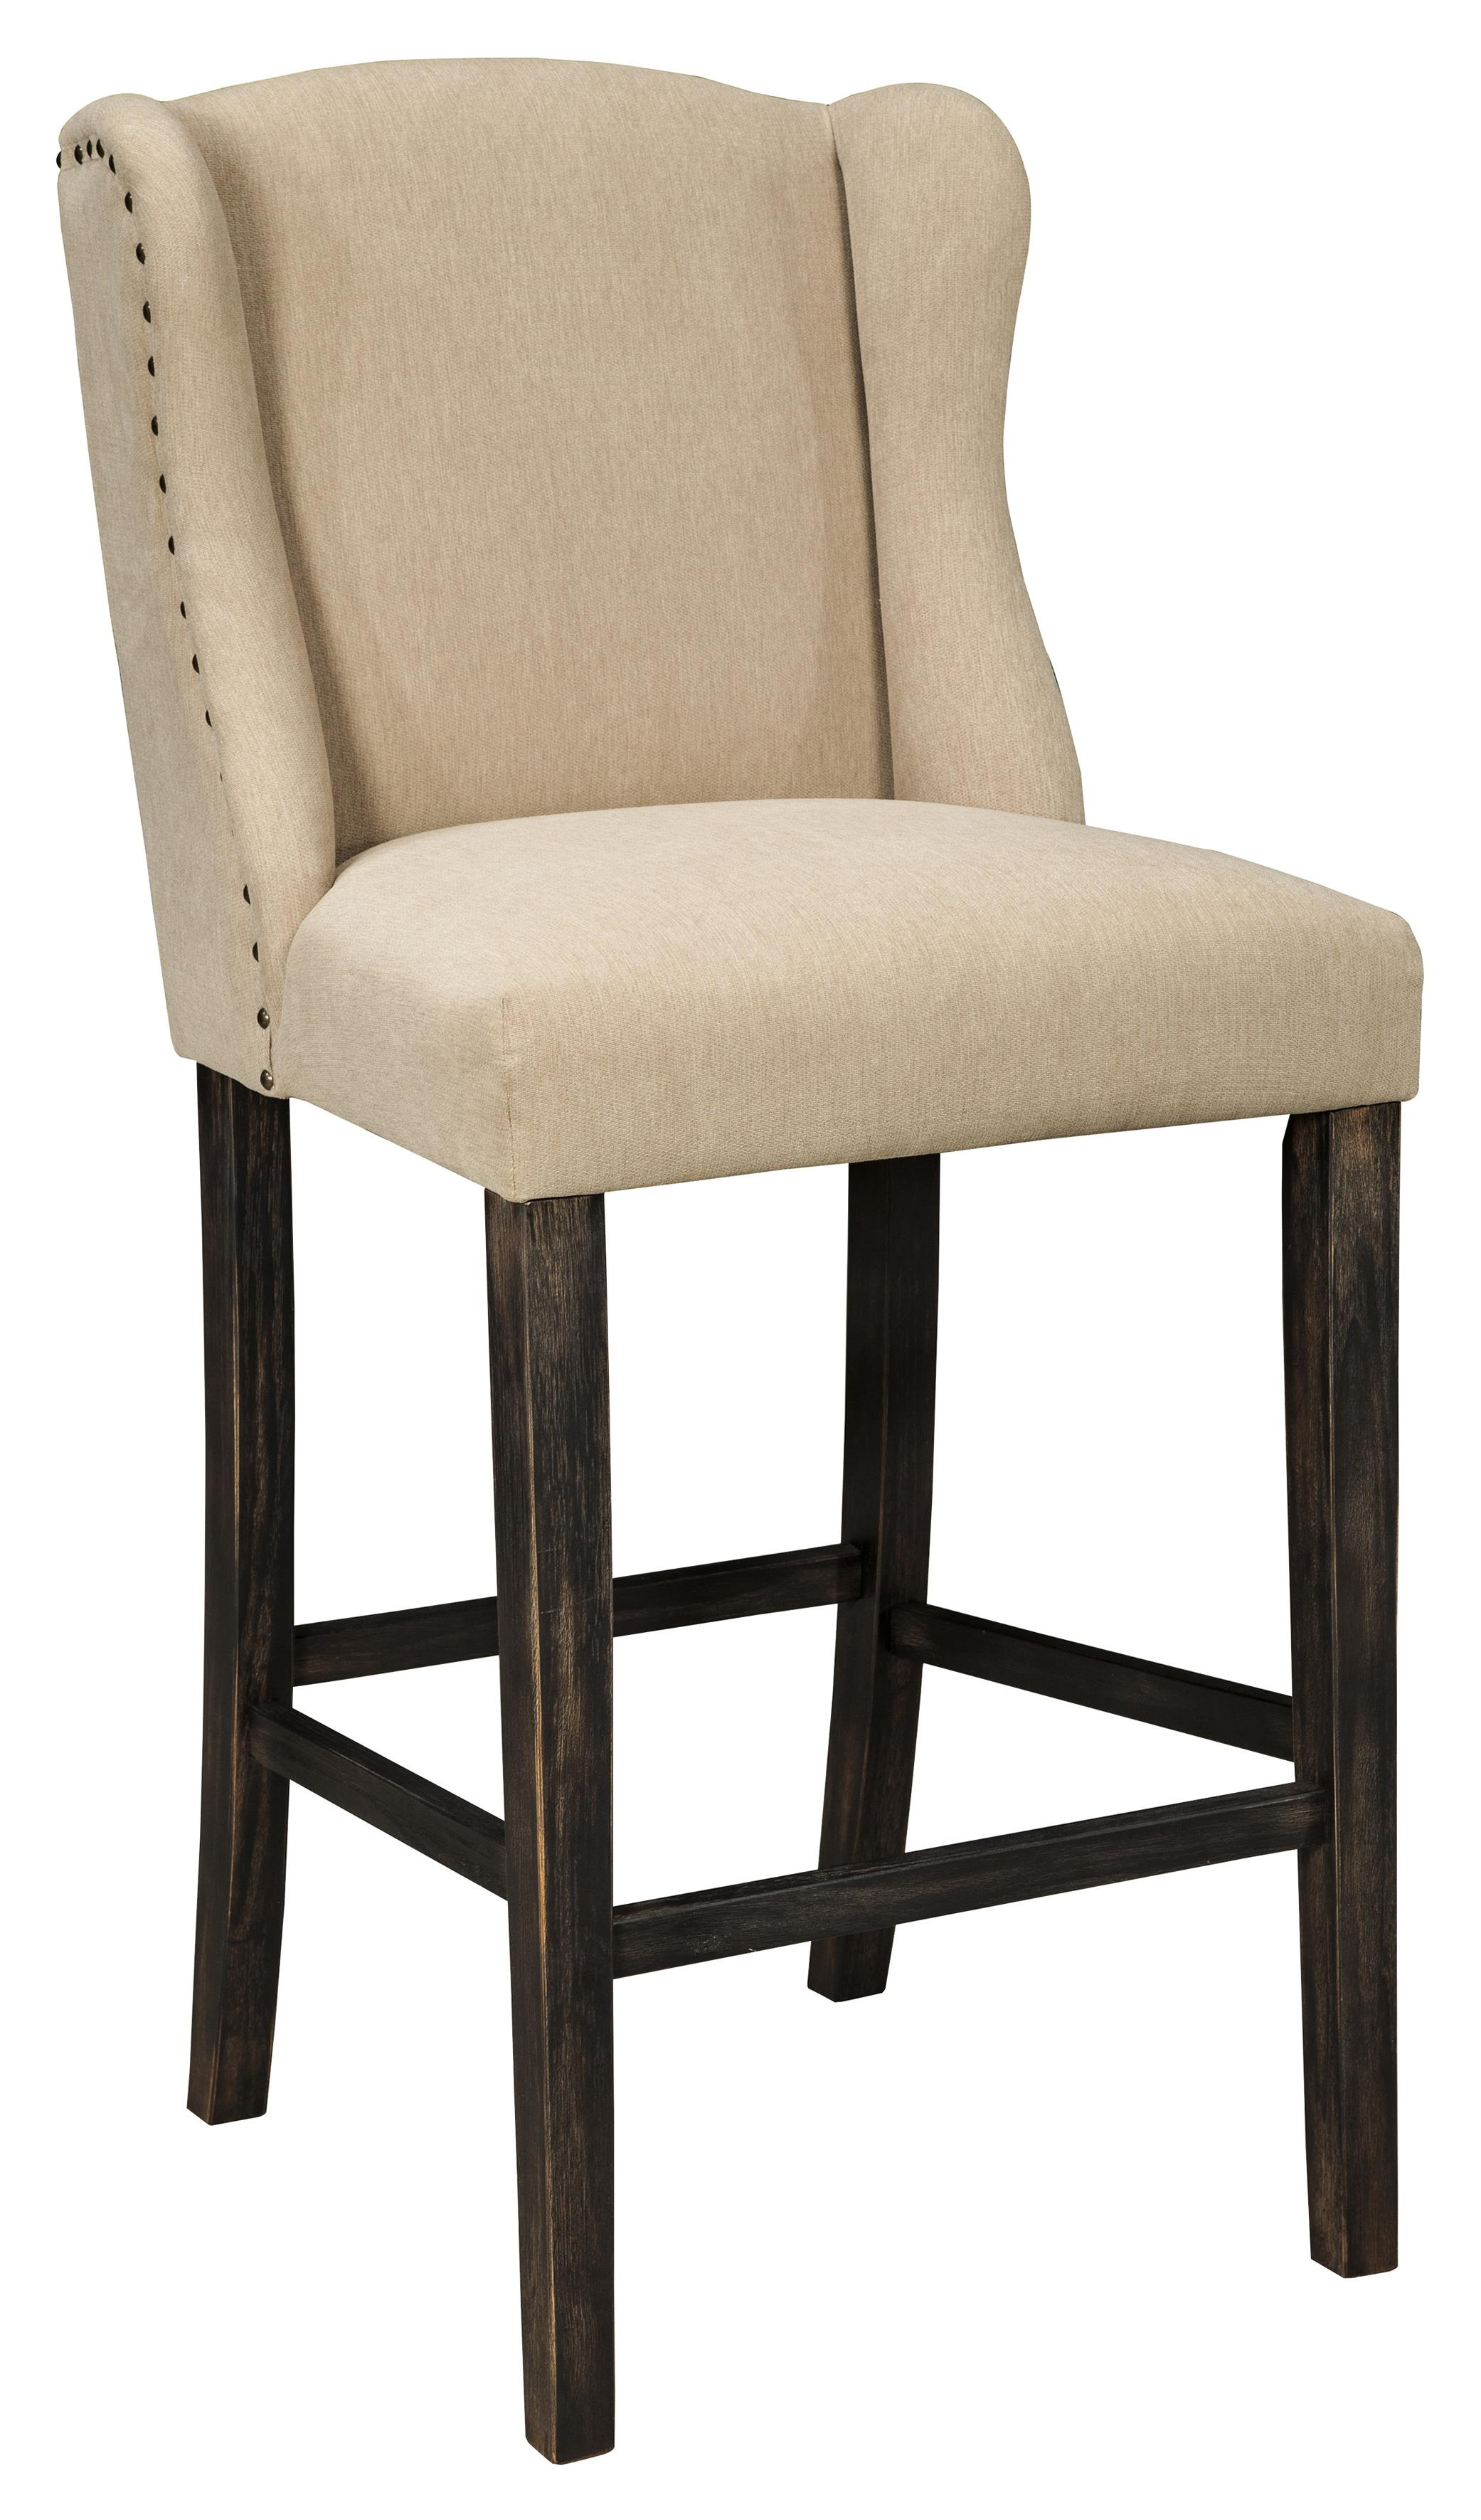 Signature Design By Ashley Moriann Tall Upholstered